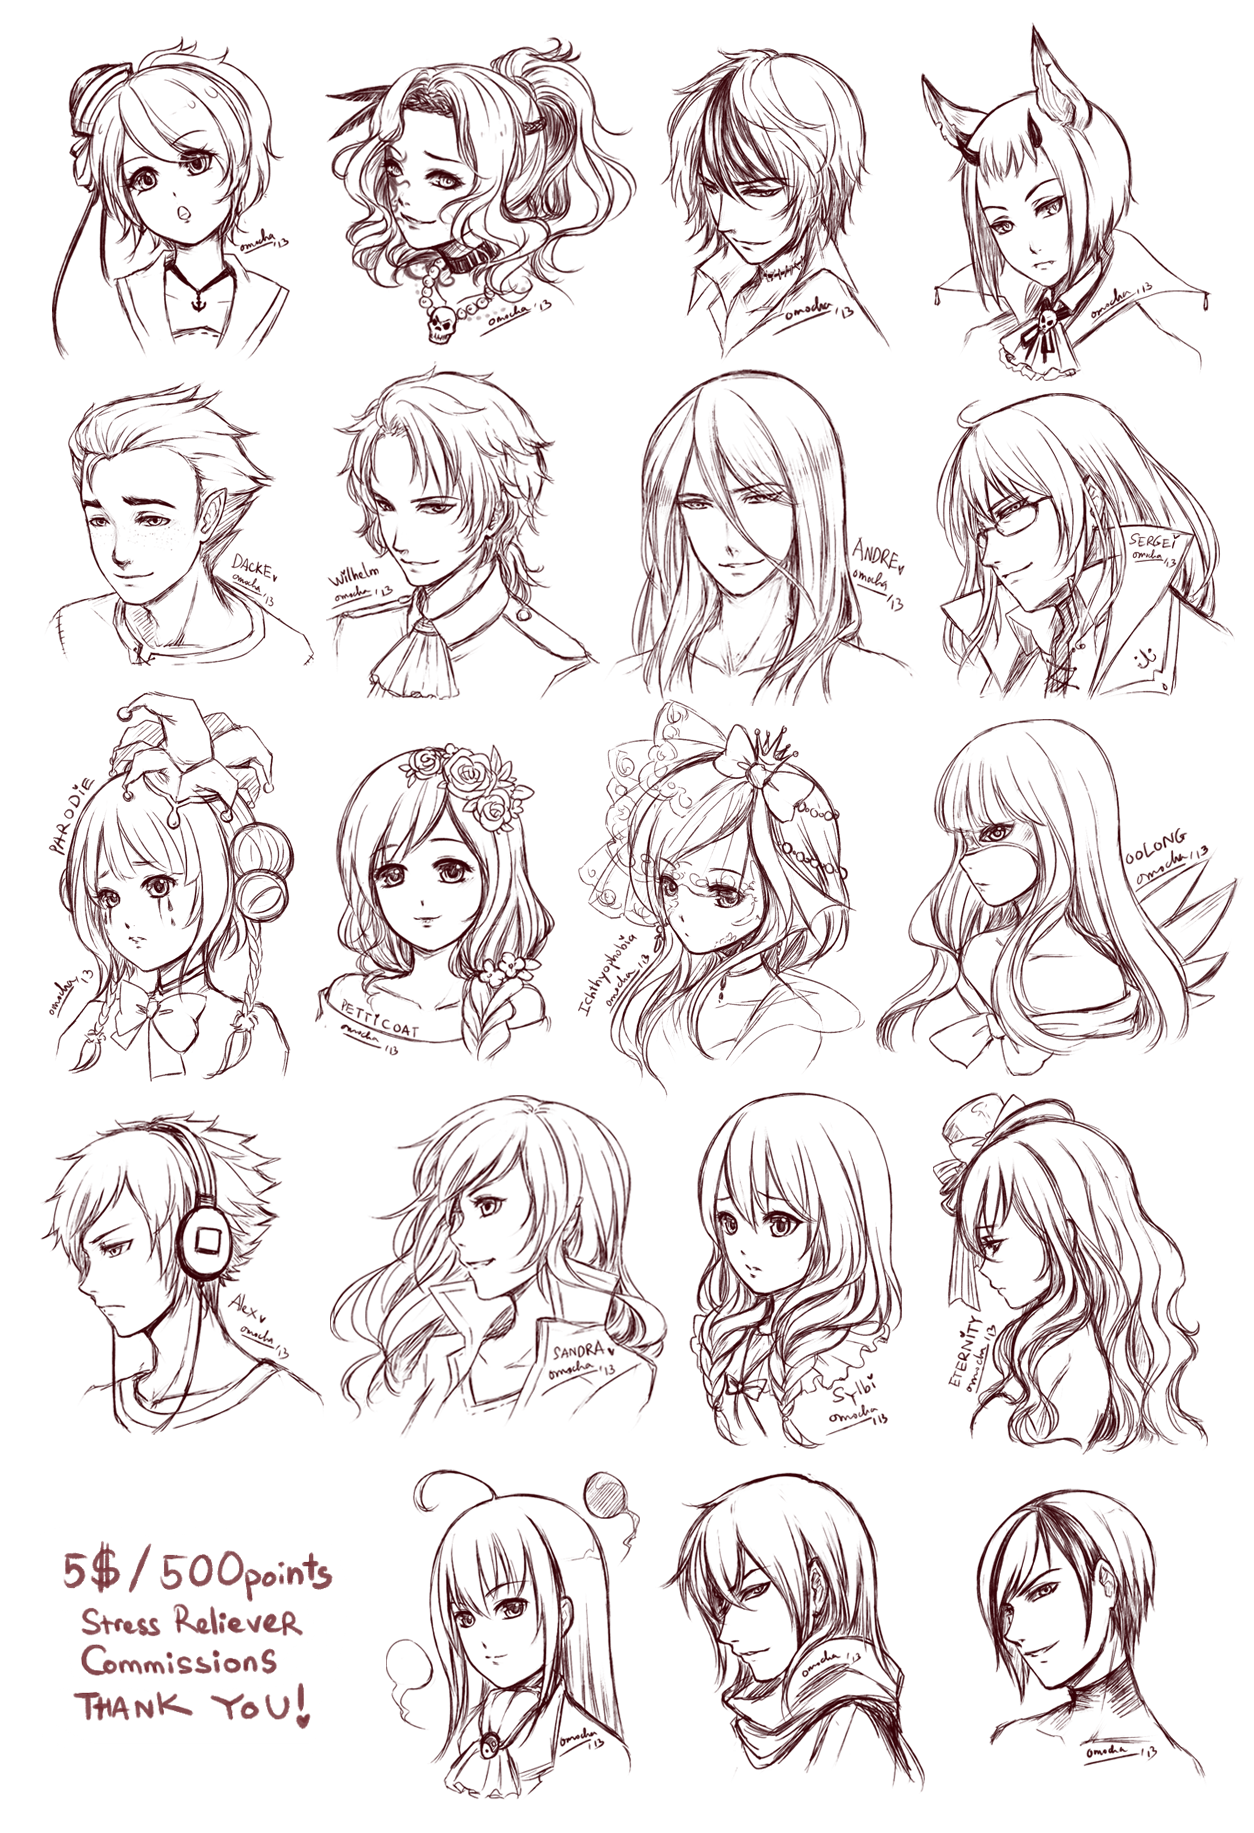 Pin By Reverie On Drawing Ideas Manga Hair Anime Hair How To Draw Hair